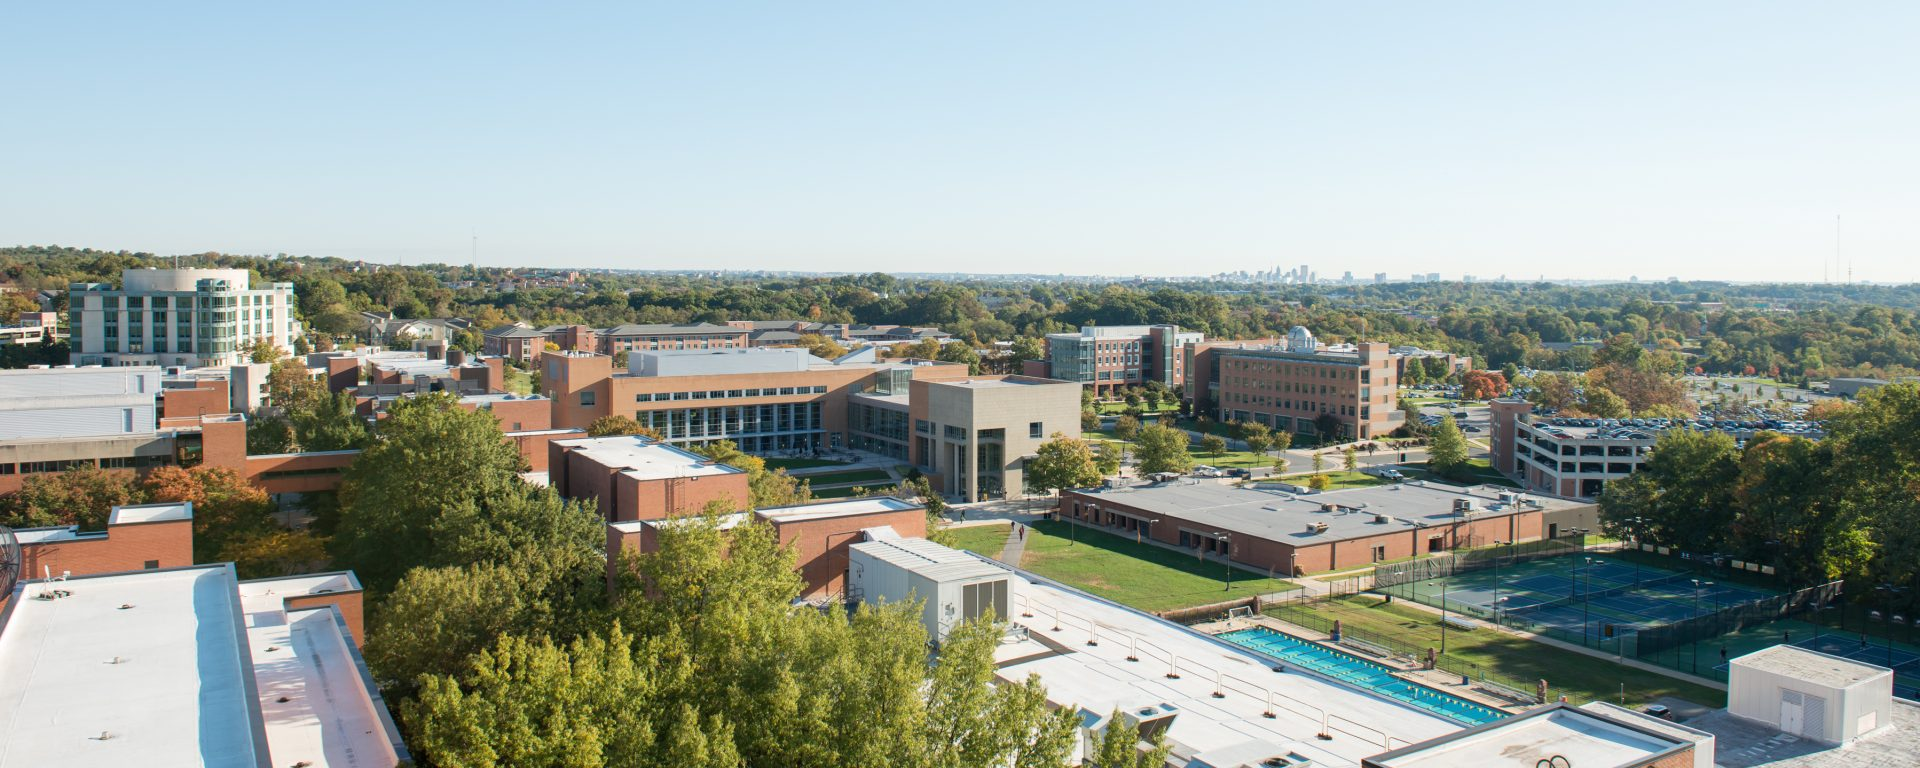 Forbes recognizes UMBC as one of the nation's top 100 public universities